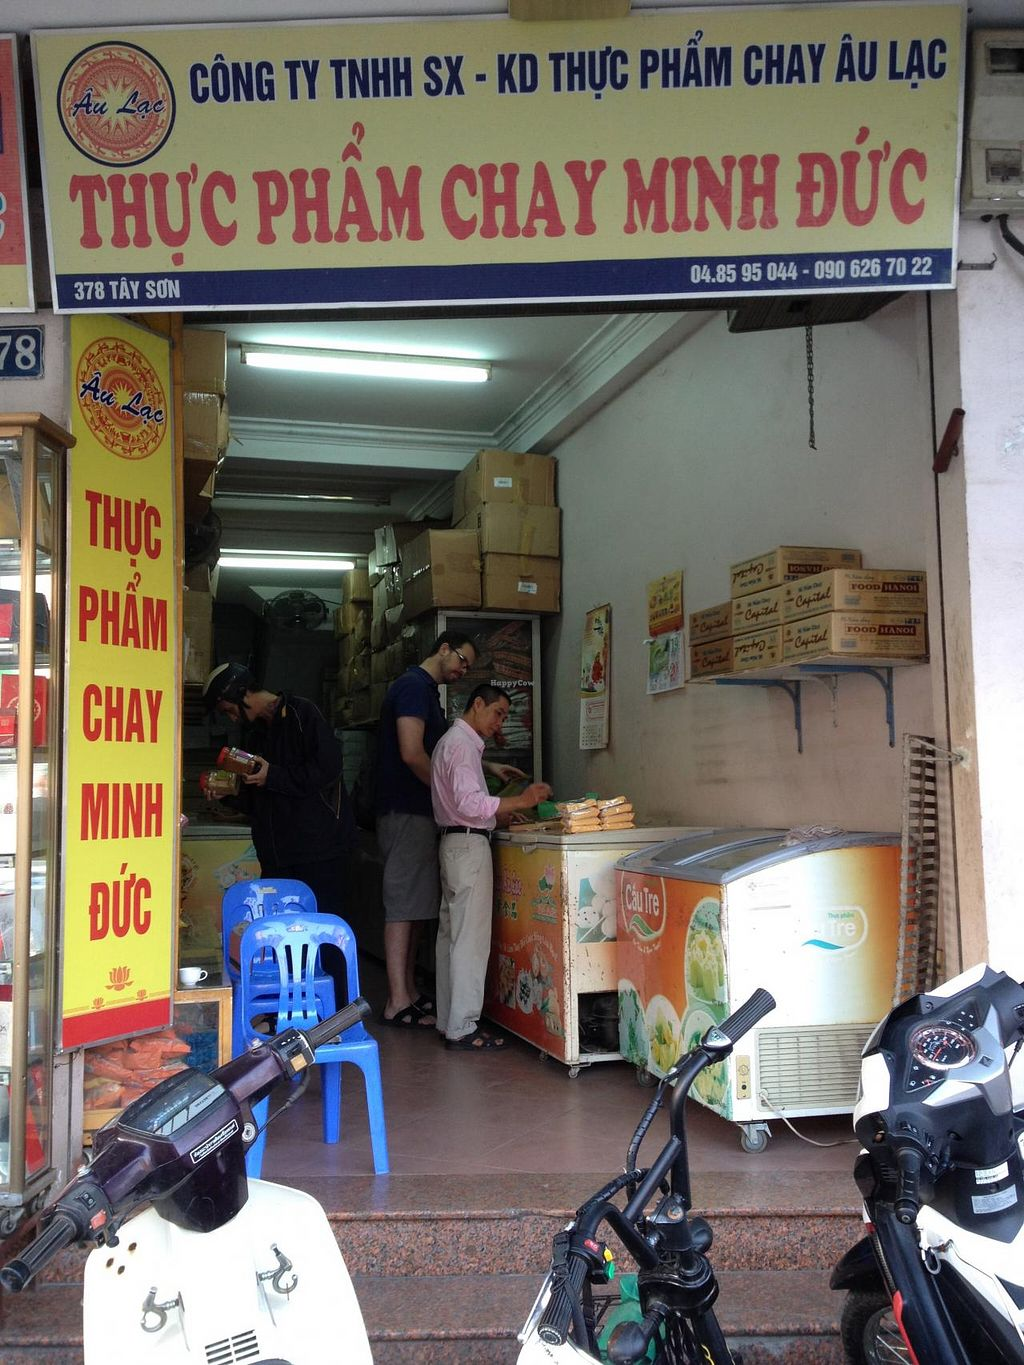 "Photo of Thuc Pham Chay Minh Duc  by <a href=""/members/profile/bonhommesoleil"">bonhommesoleil</a> <br/>Shop front <br/> January 6, 2014  - <a href='/contact/abuse/image/42604/61901'>Report</a>"